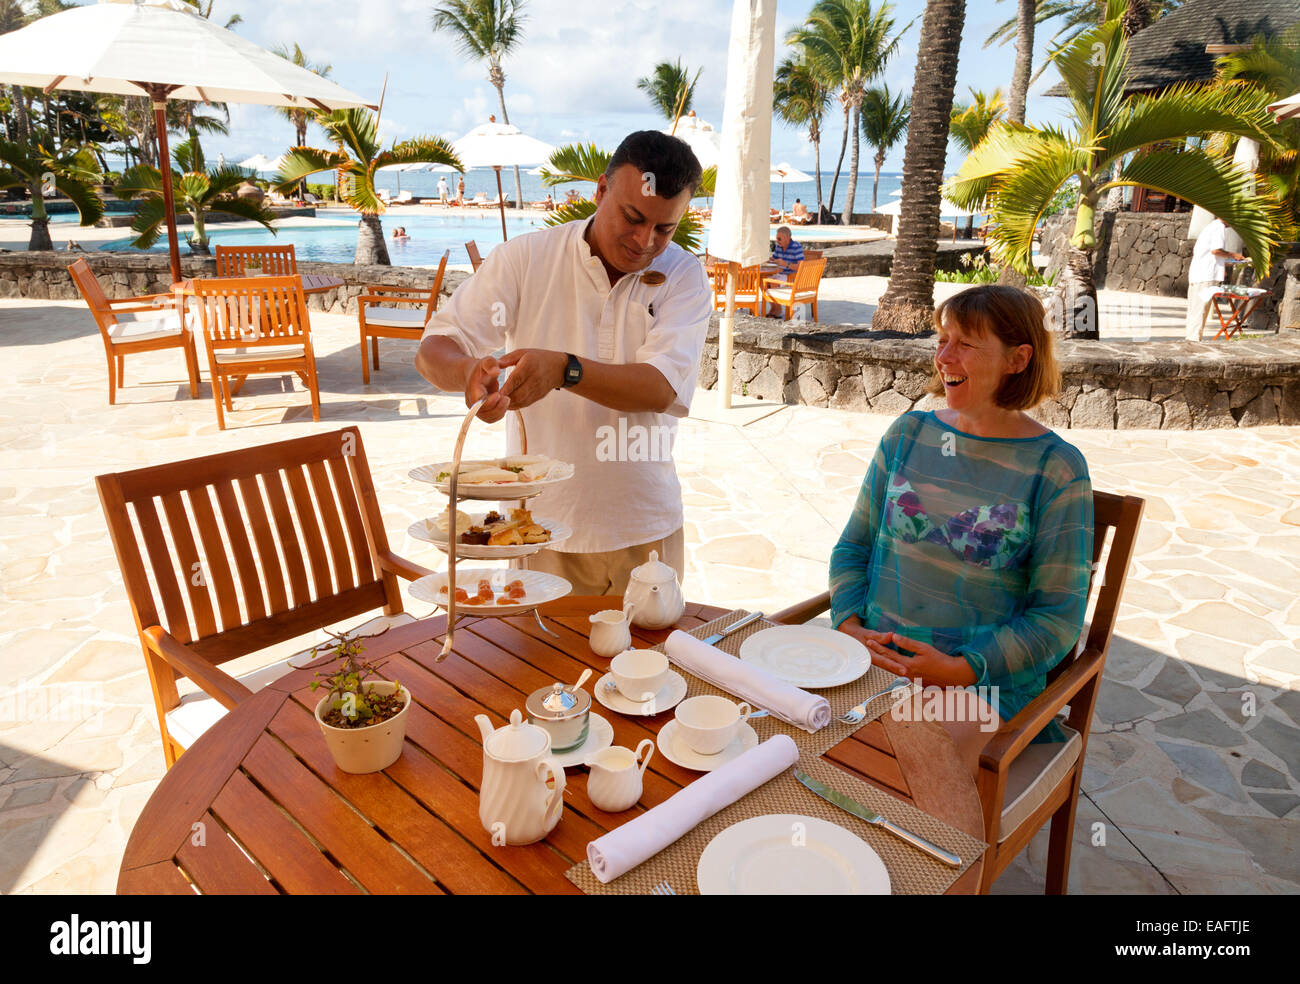 A woman guest being served afternoon tea at her table by a waiter, the luxury Residence 5 star hotel, Belle Mare, Stock Photo